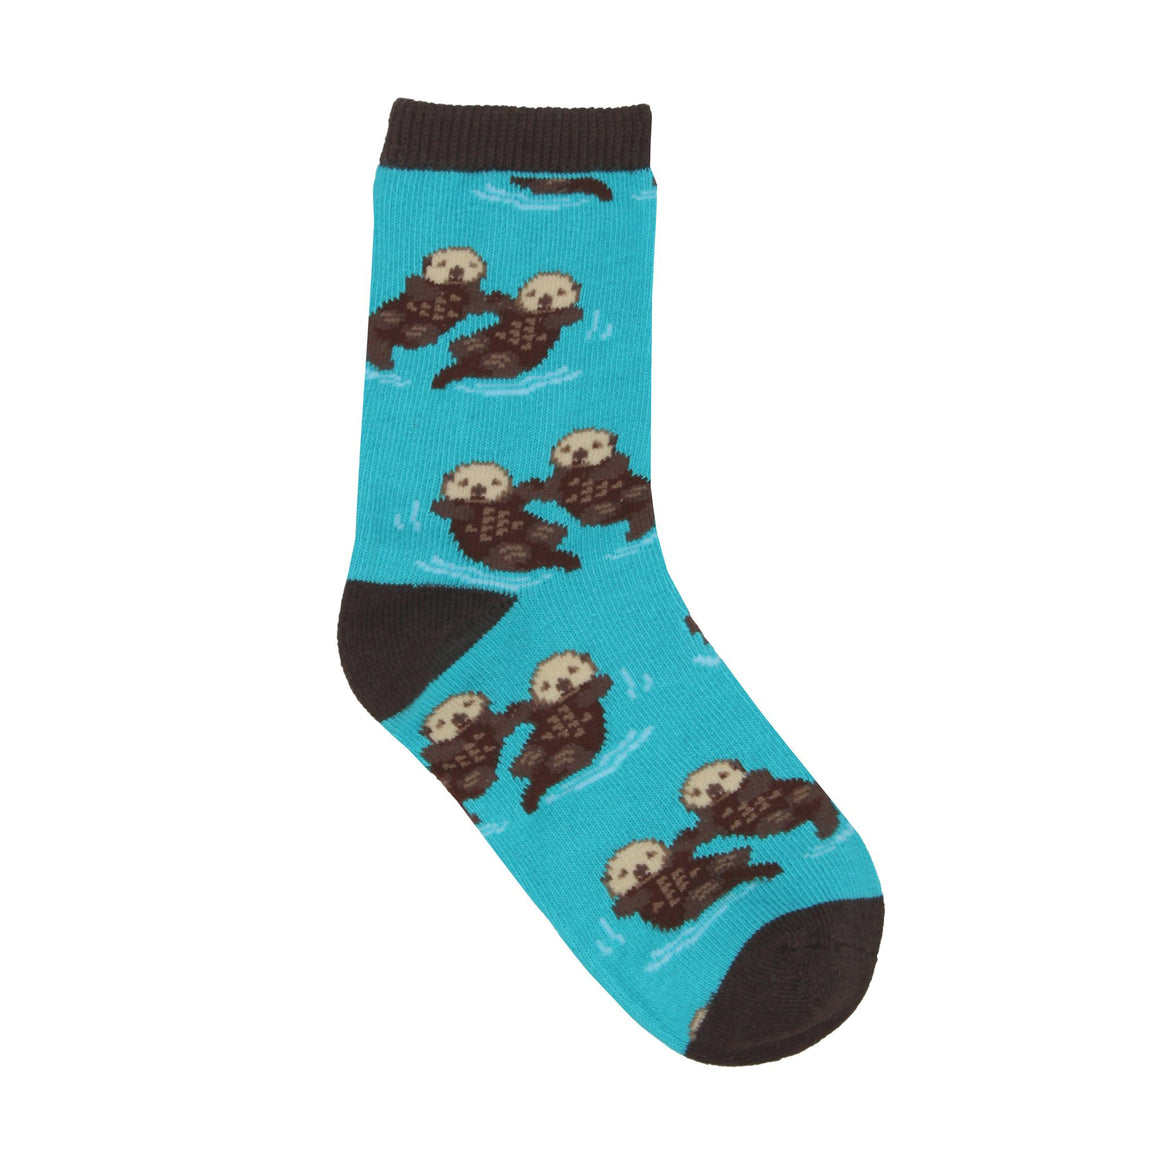 Cute sea otters hold hands on otter socks for kids.